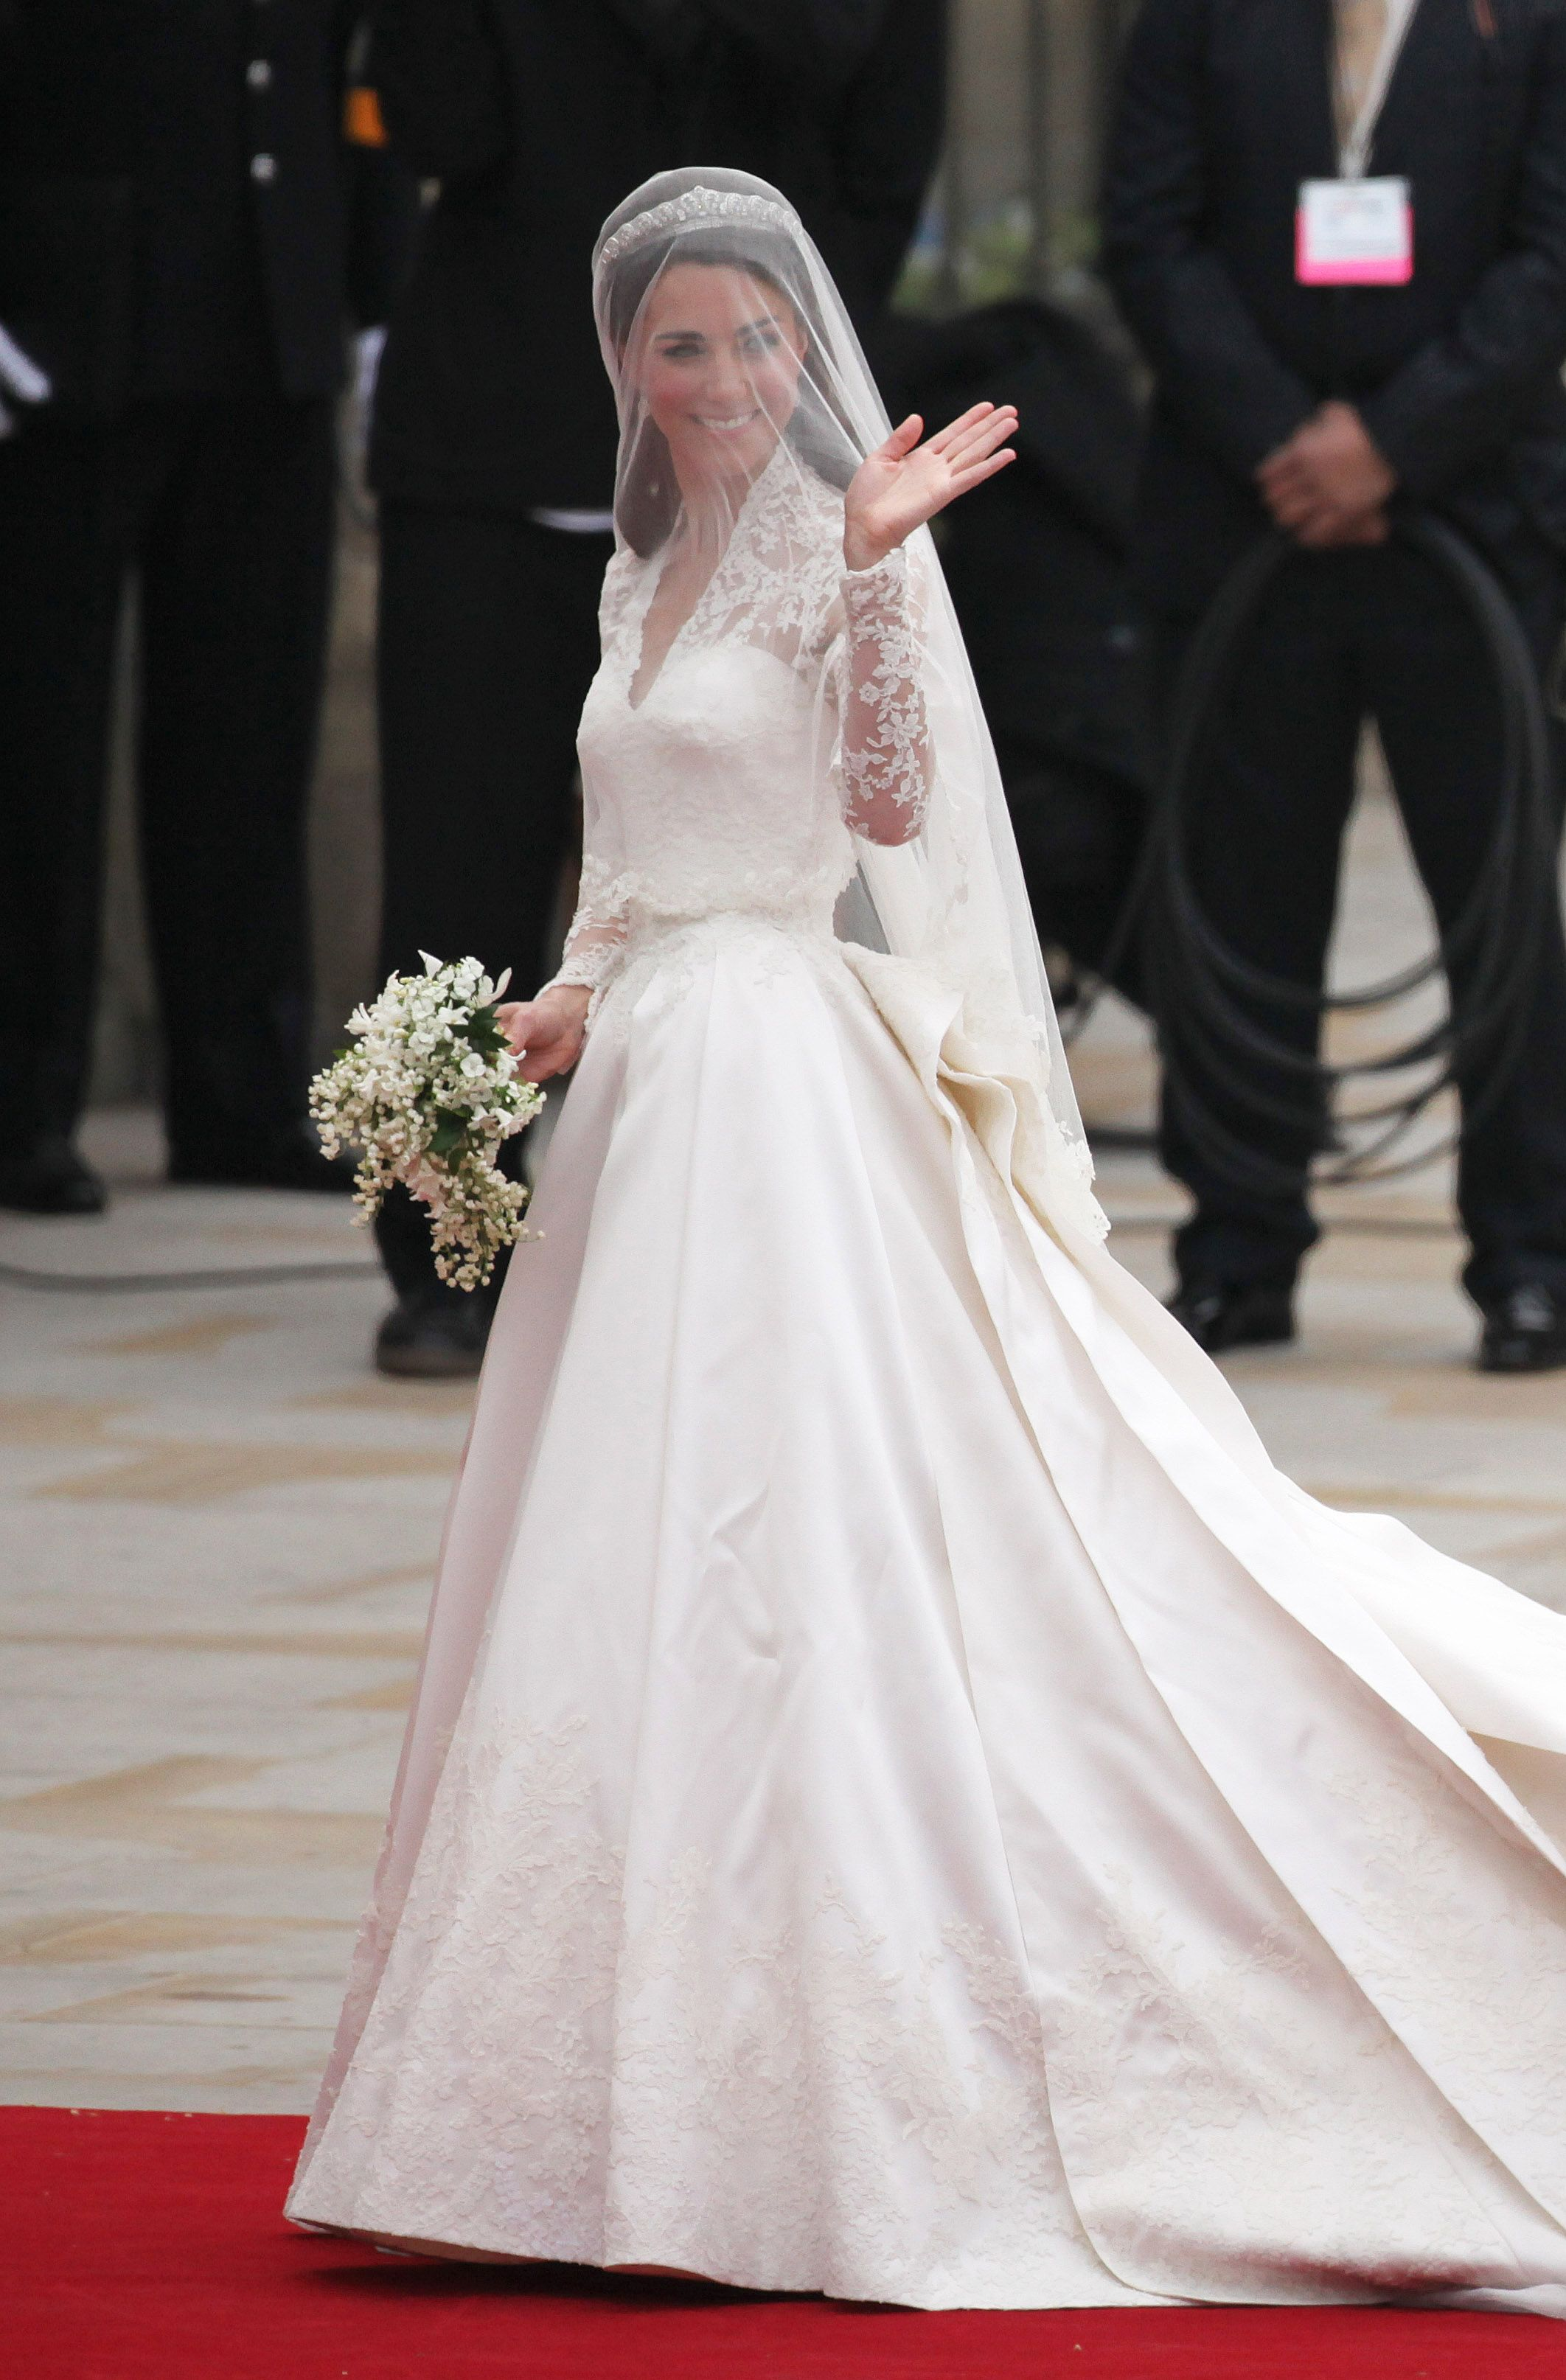 Royal wedding dress  Look Back at All the Best Photos From Kate and Willus Royal Wedding